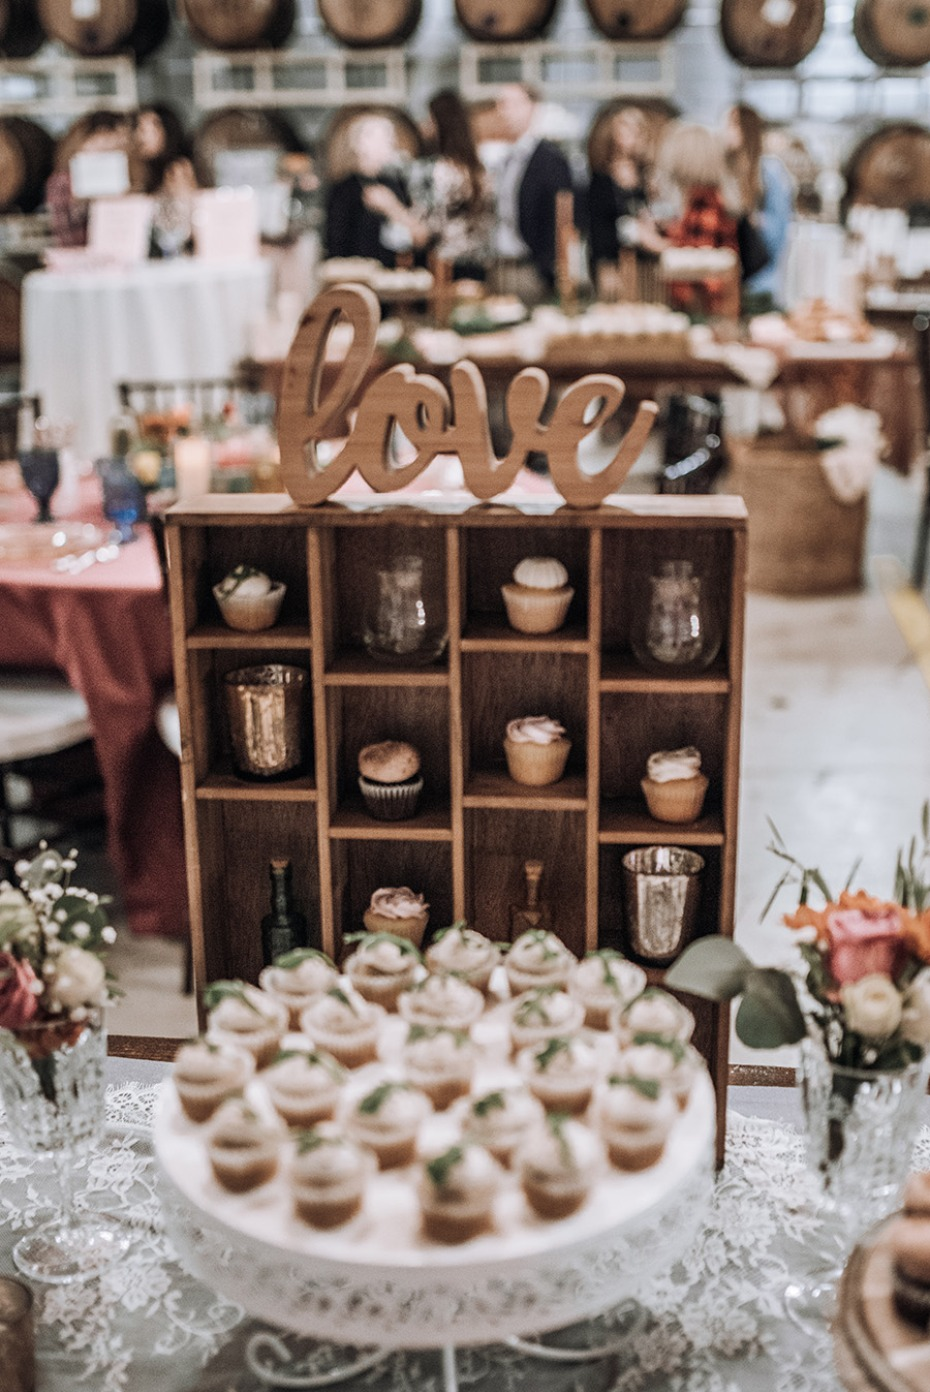 love wedding cupcake table display idea